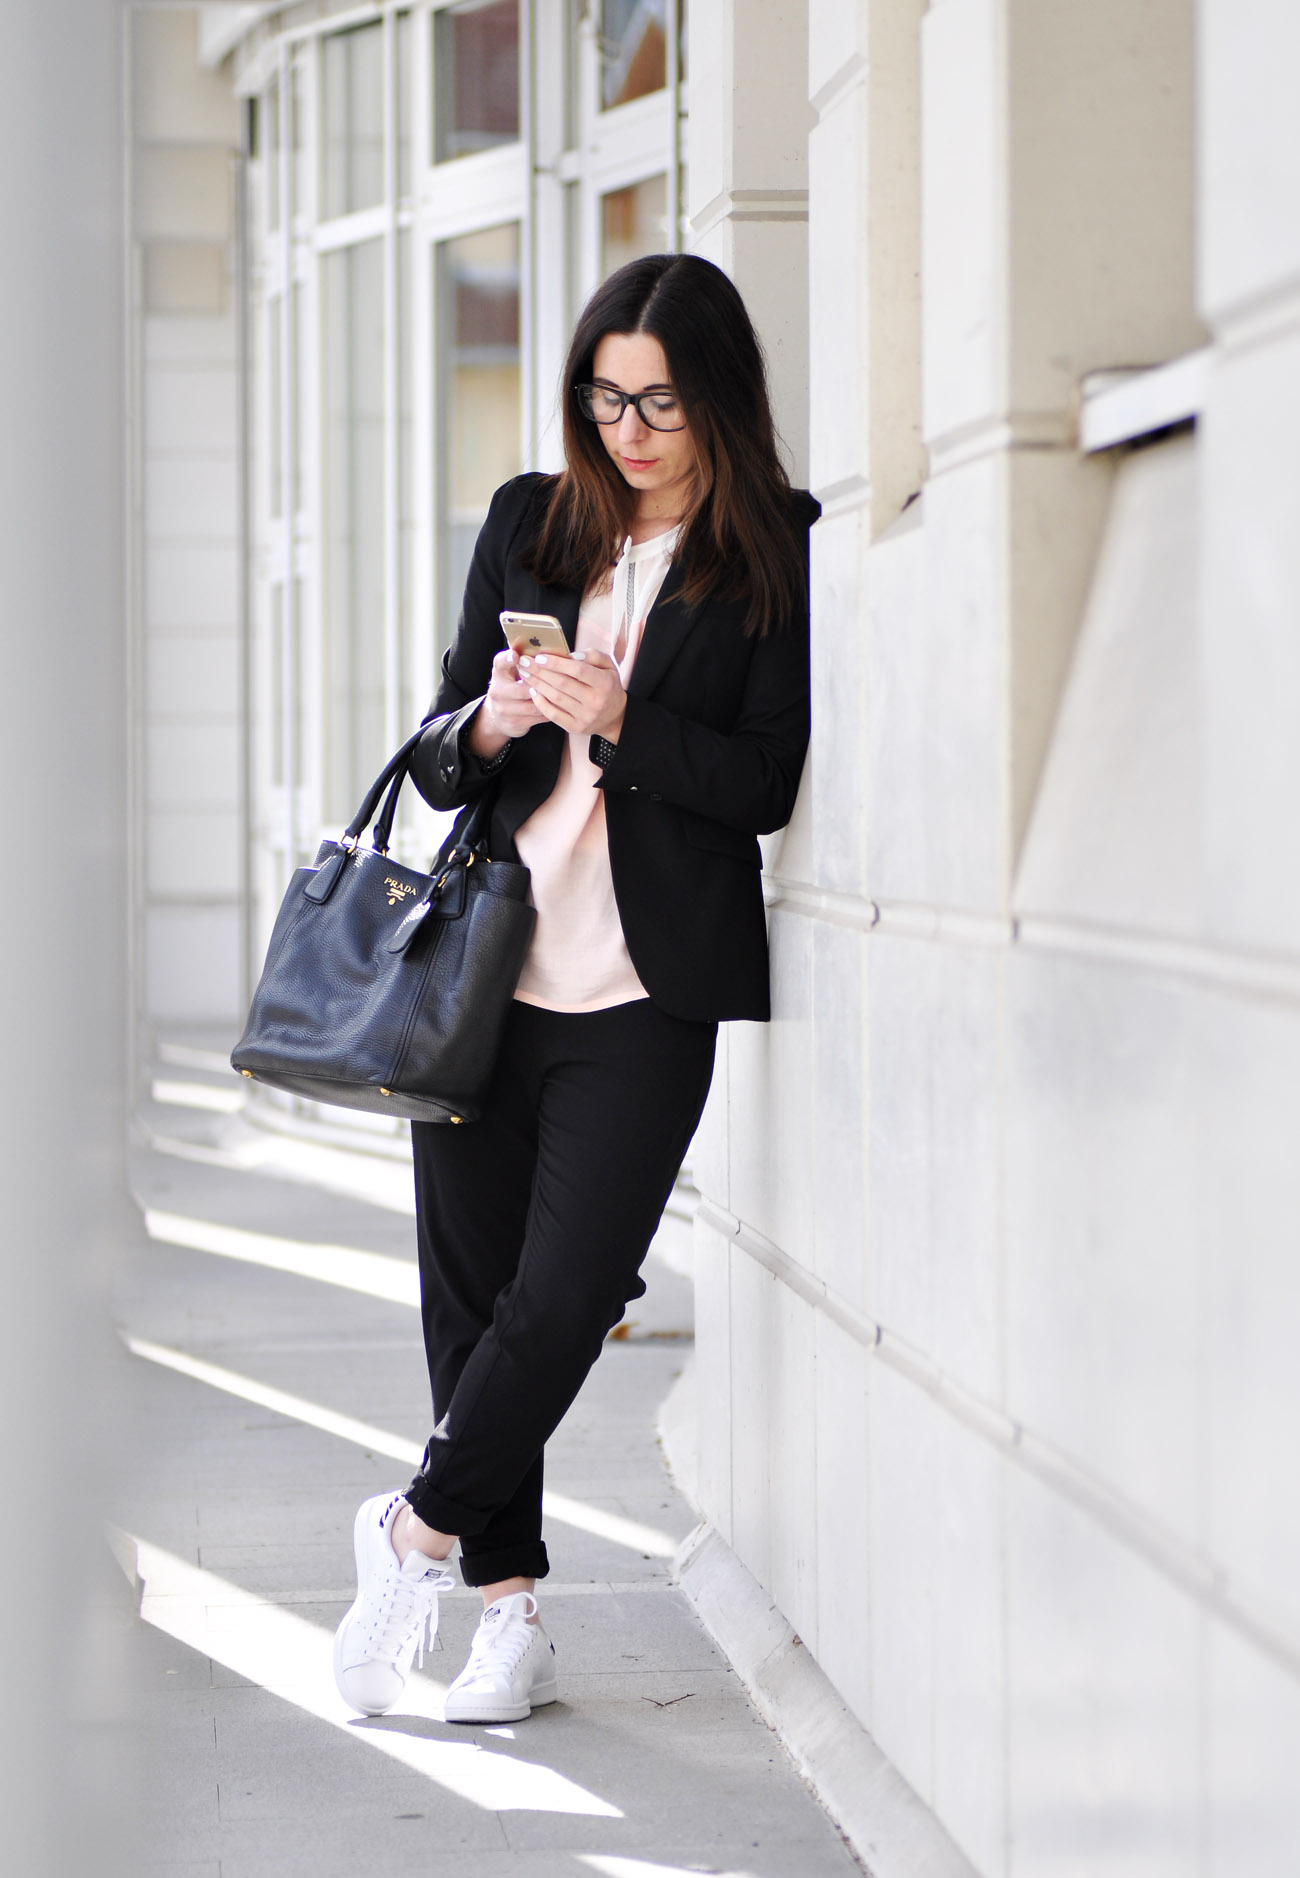 How to style: Business...